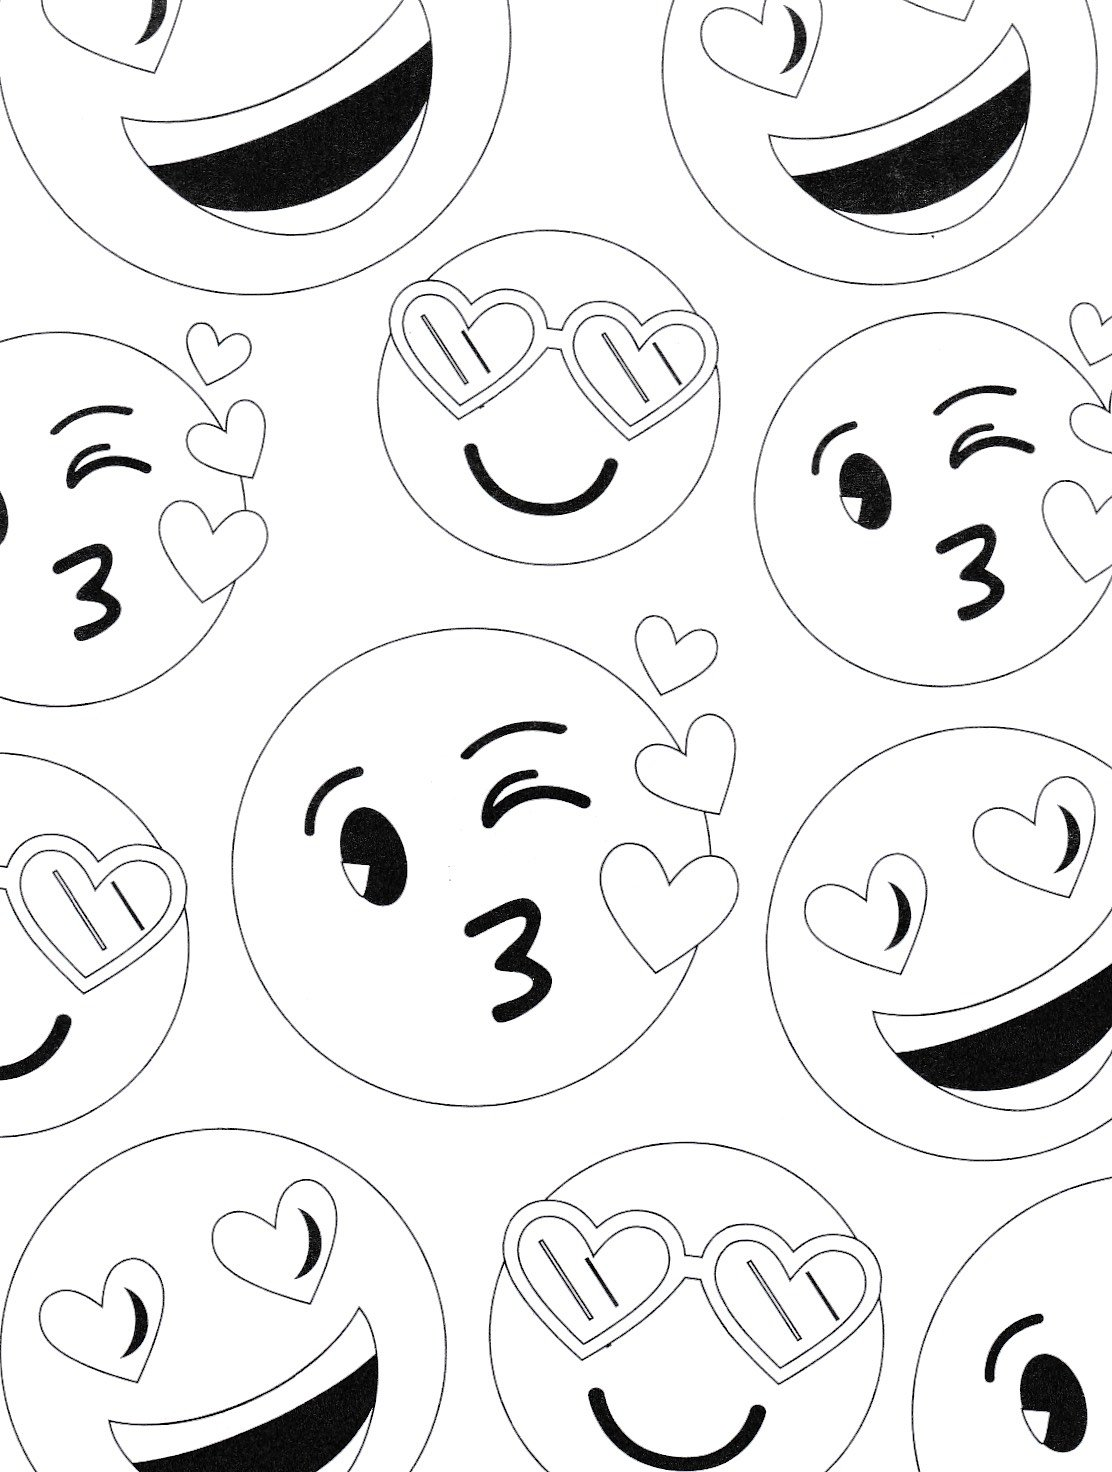 Valentines Emoticon Coloring Pages and Pencils, set of 48 pieces Party Favors by Custom Variety (Image #5)